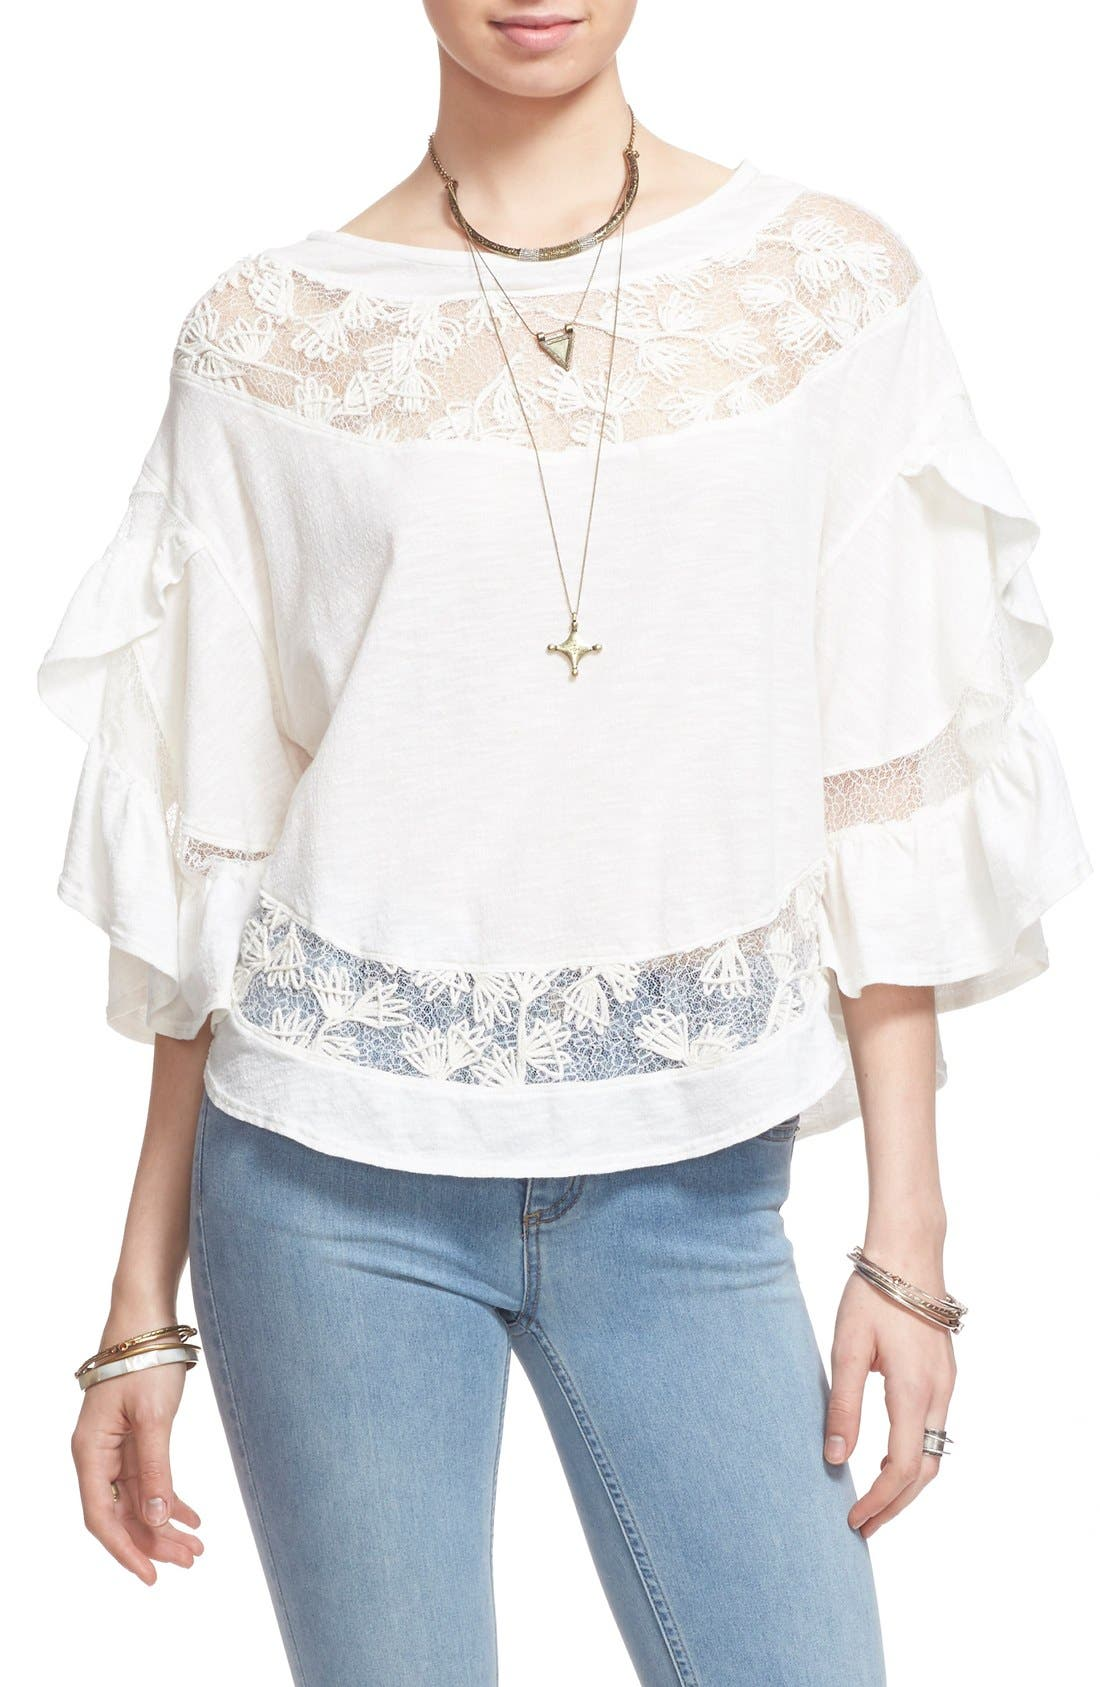 'Love Affair' Lace Inset Knit Top,                         Main,                         color, Ivory